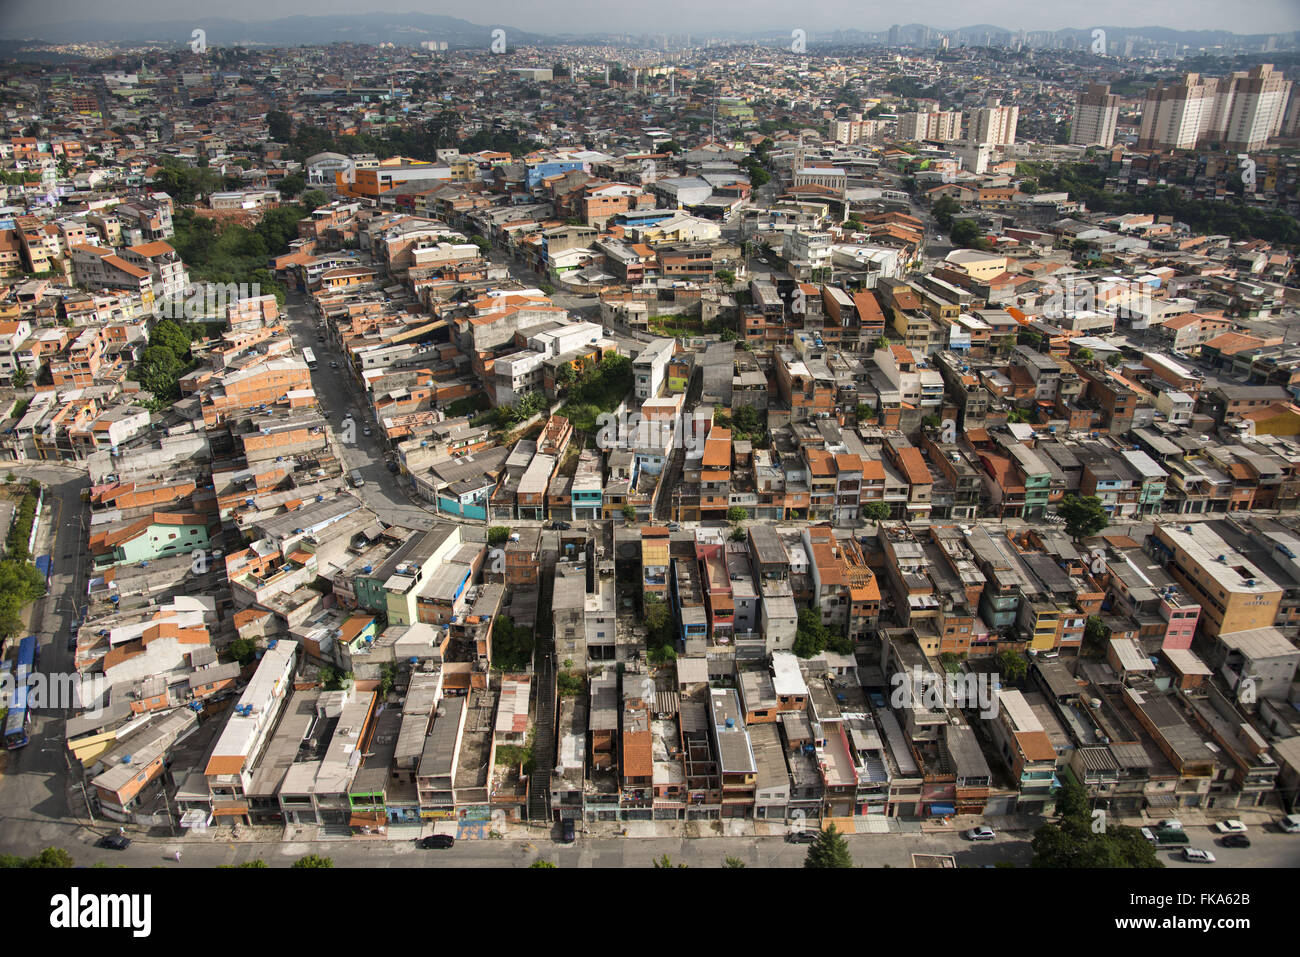 Aerial view of public housing in the city outskirts - Stock Image